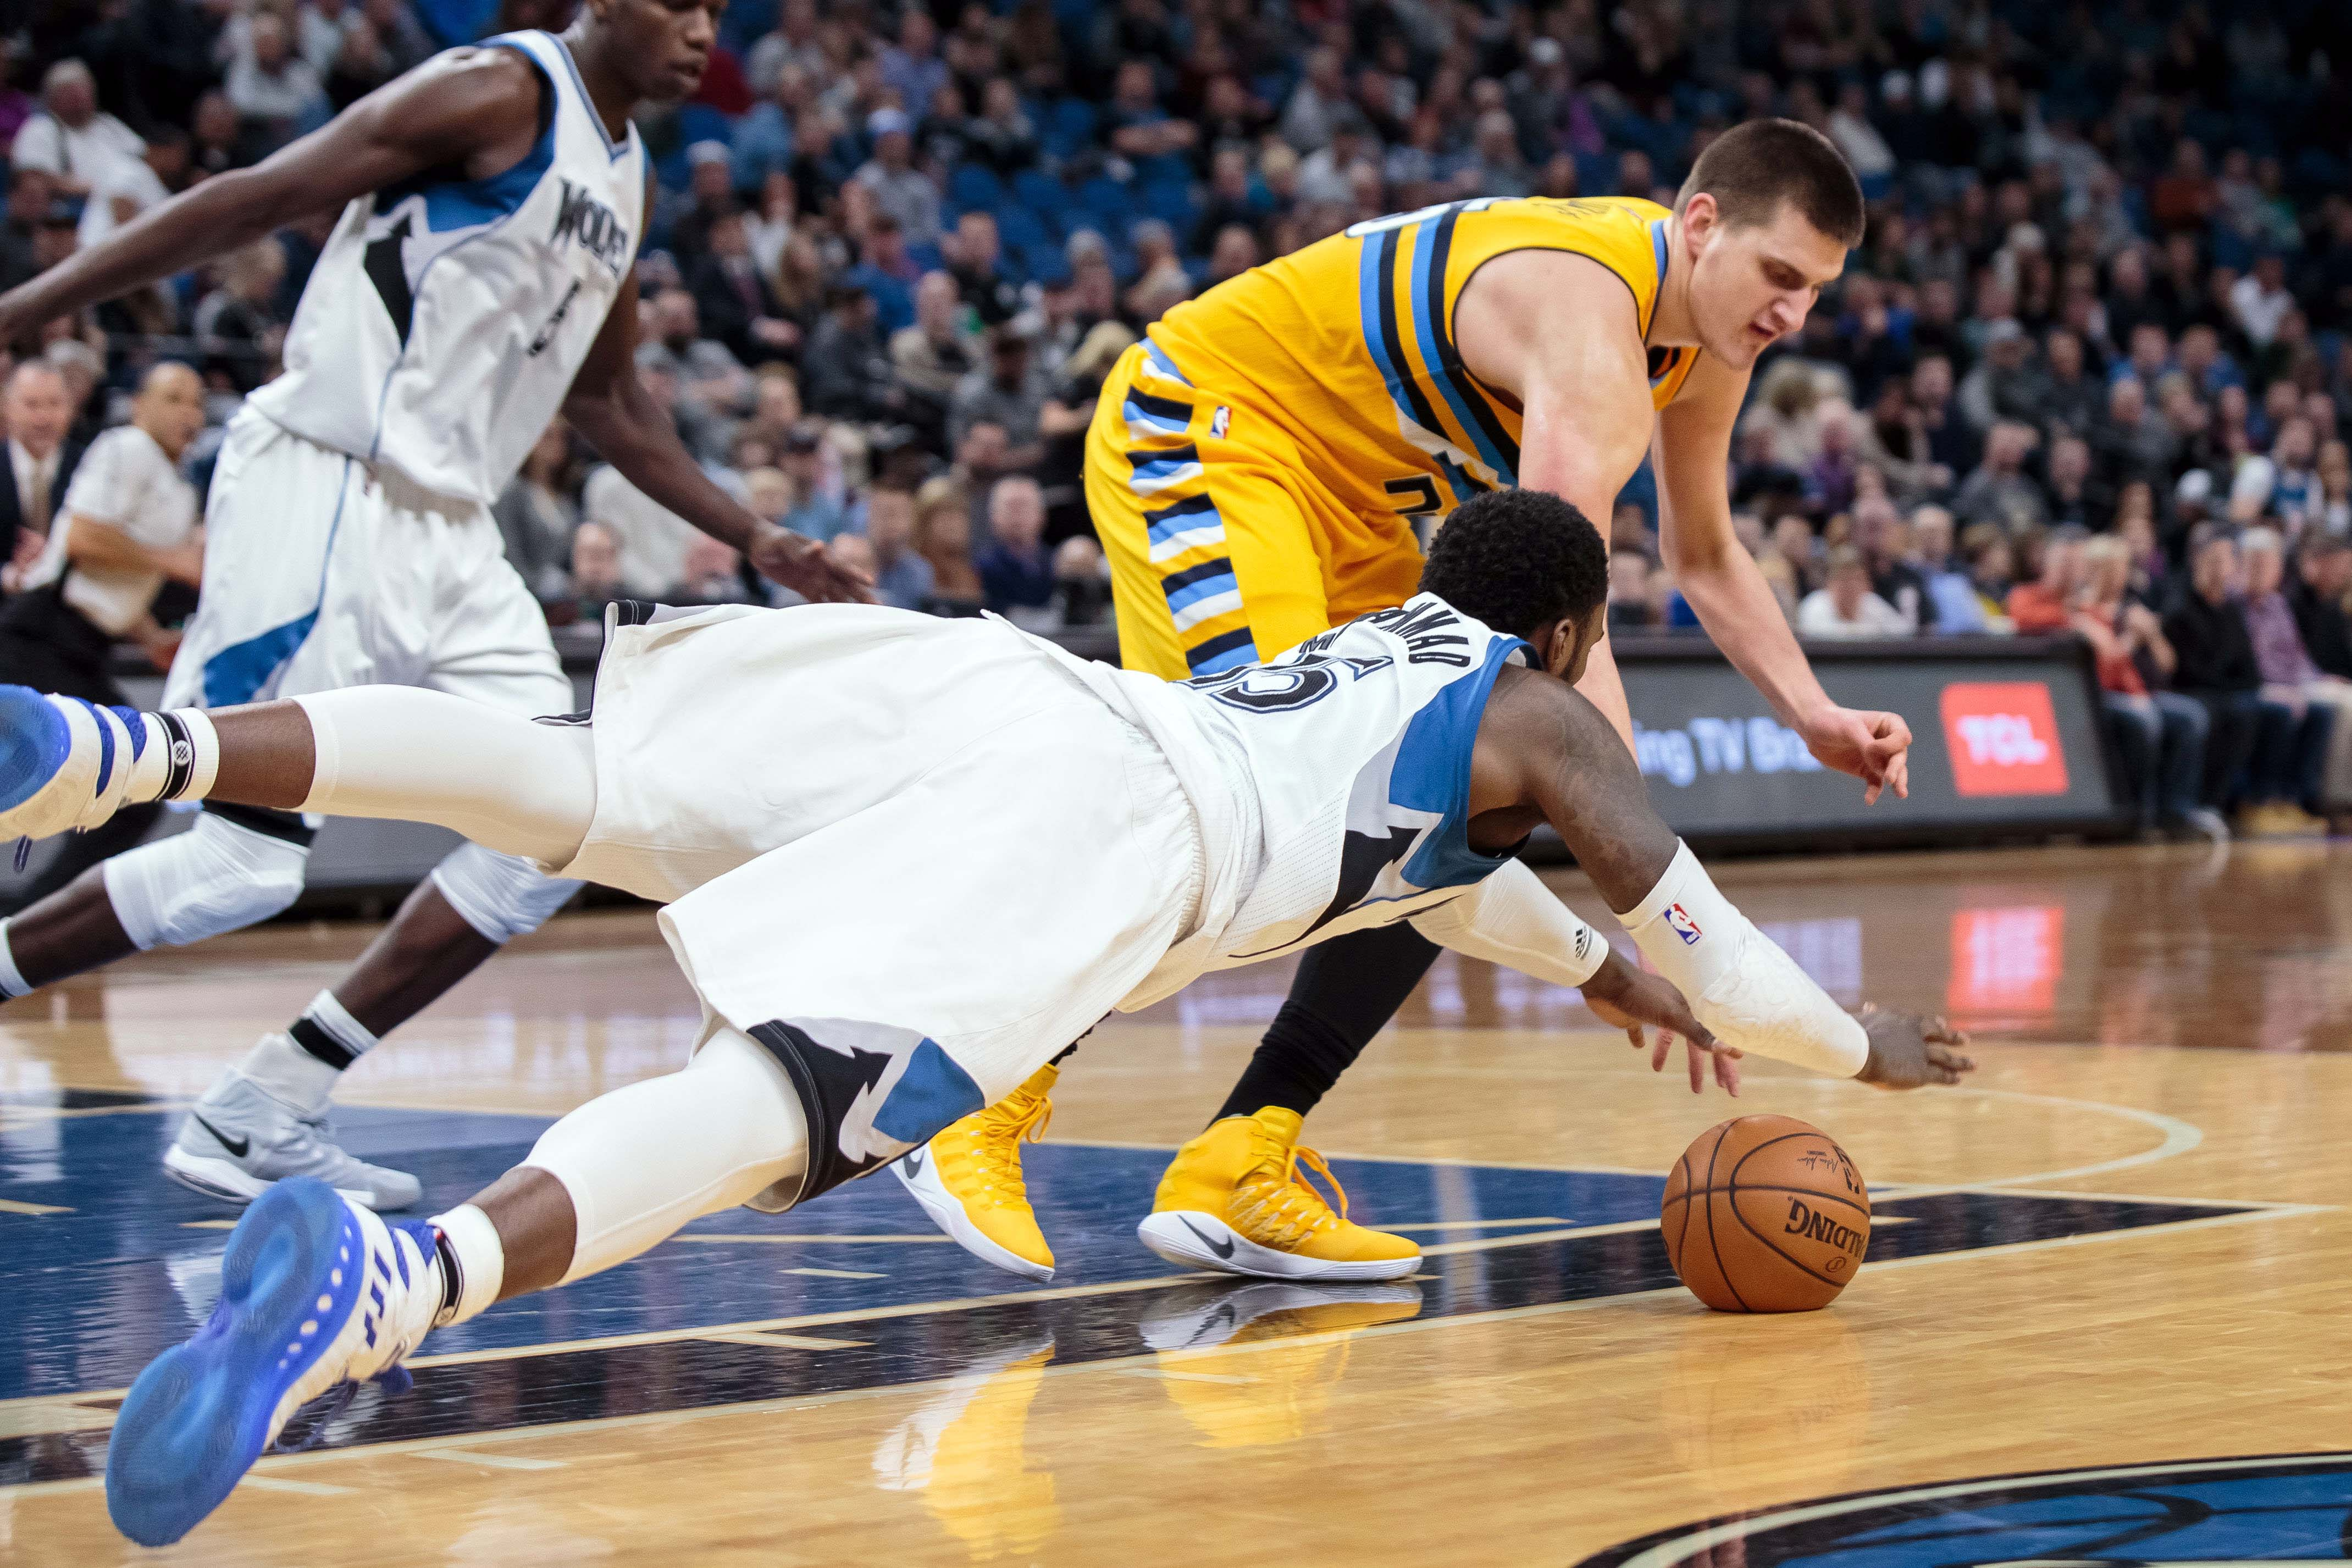 Jan 22, 2017; Minneapolis, MN, USA; Minnesota Timberwolves forward Shabazz Muhammad (15) dives for a loose ball in the third quarter against the Denver Nuggets forward Nikola Jokic (15) at Target Center. The Minnesota Timberwolves beat the Denver Nuggets 111-108. Mandatory Credit: Brad Rempel-USA TODAY Sports